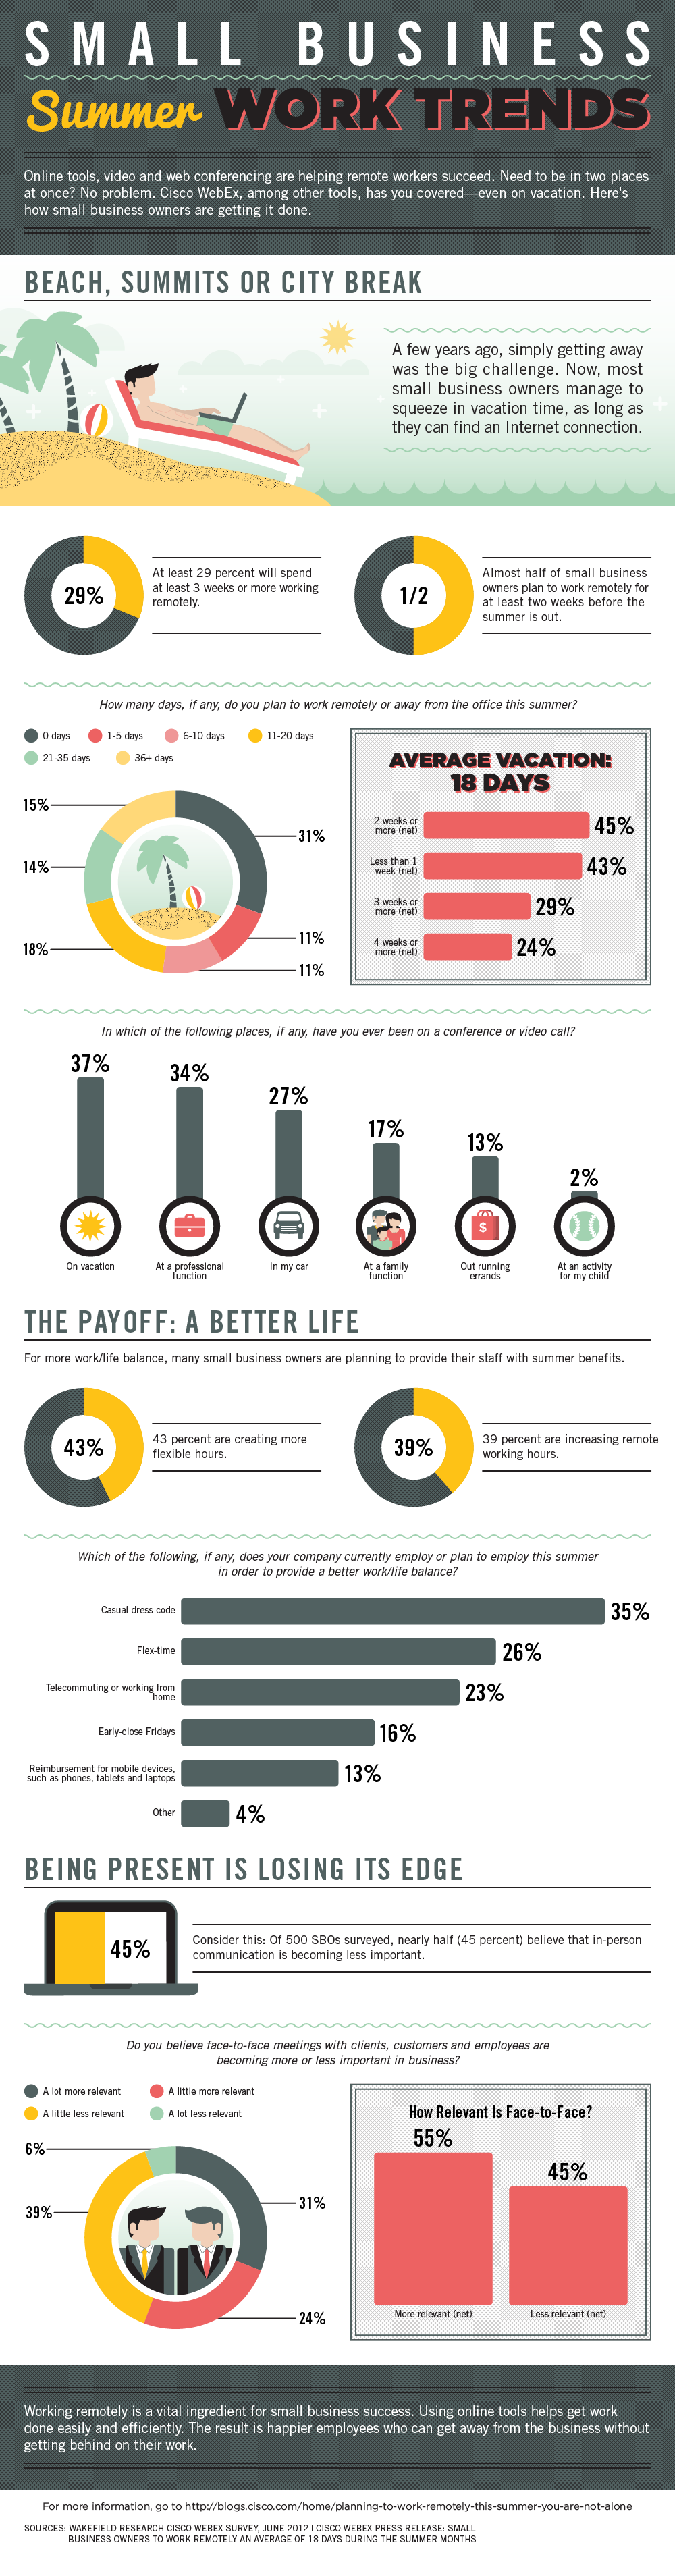 2012 Summer Work Trends in Small Business